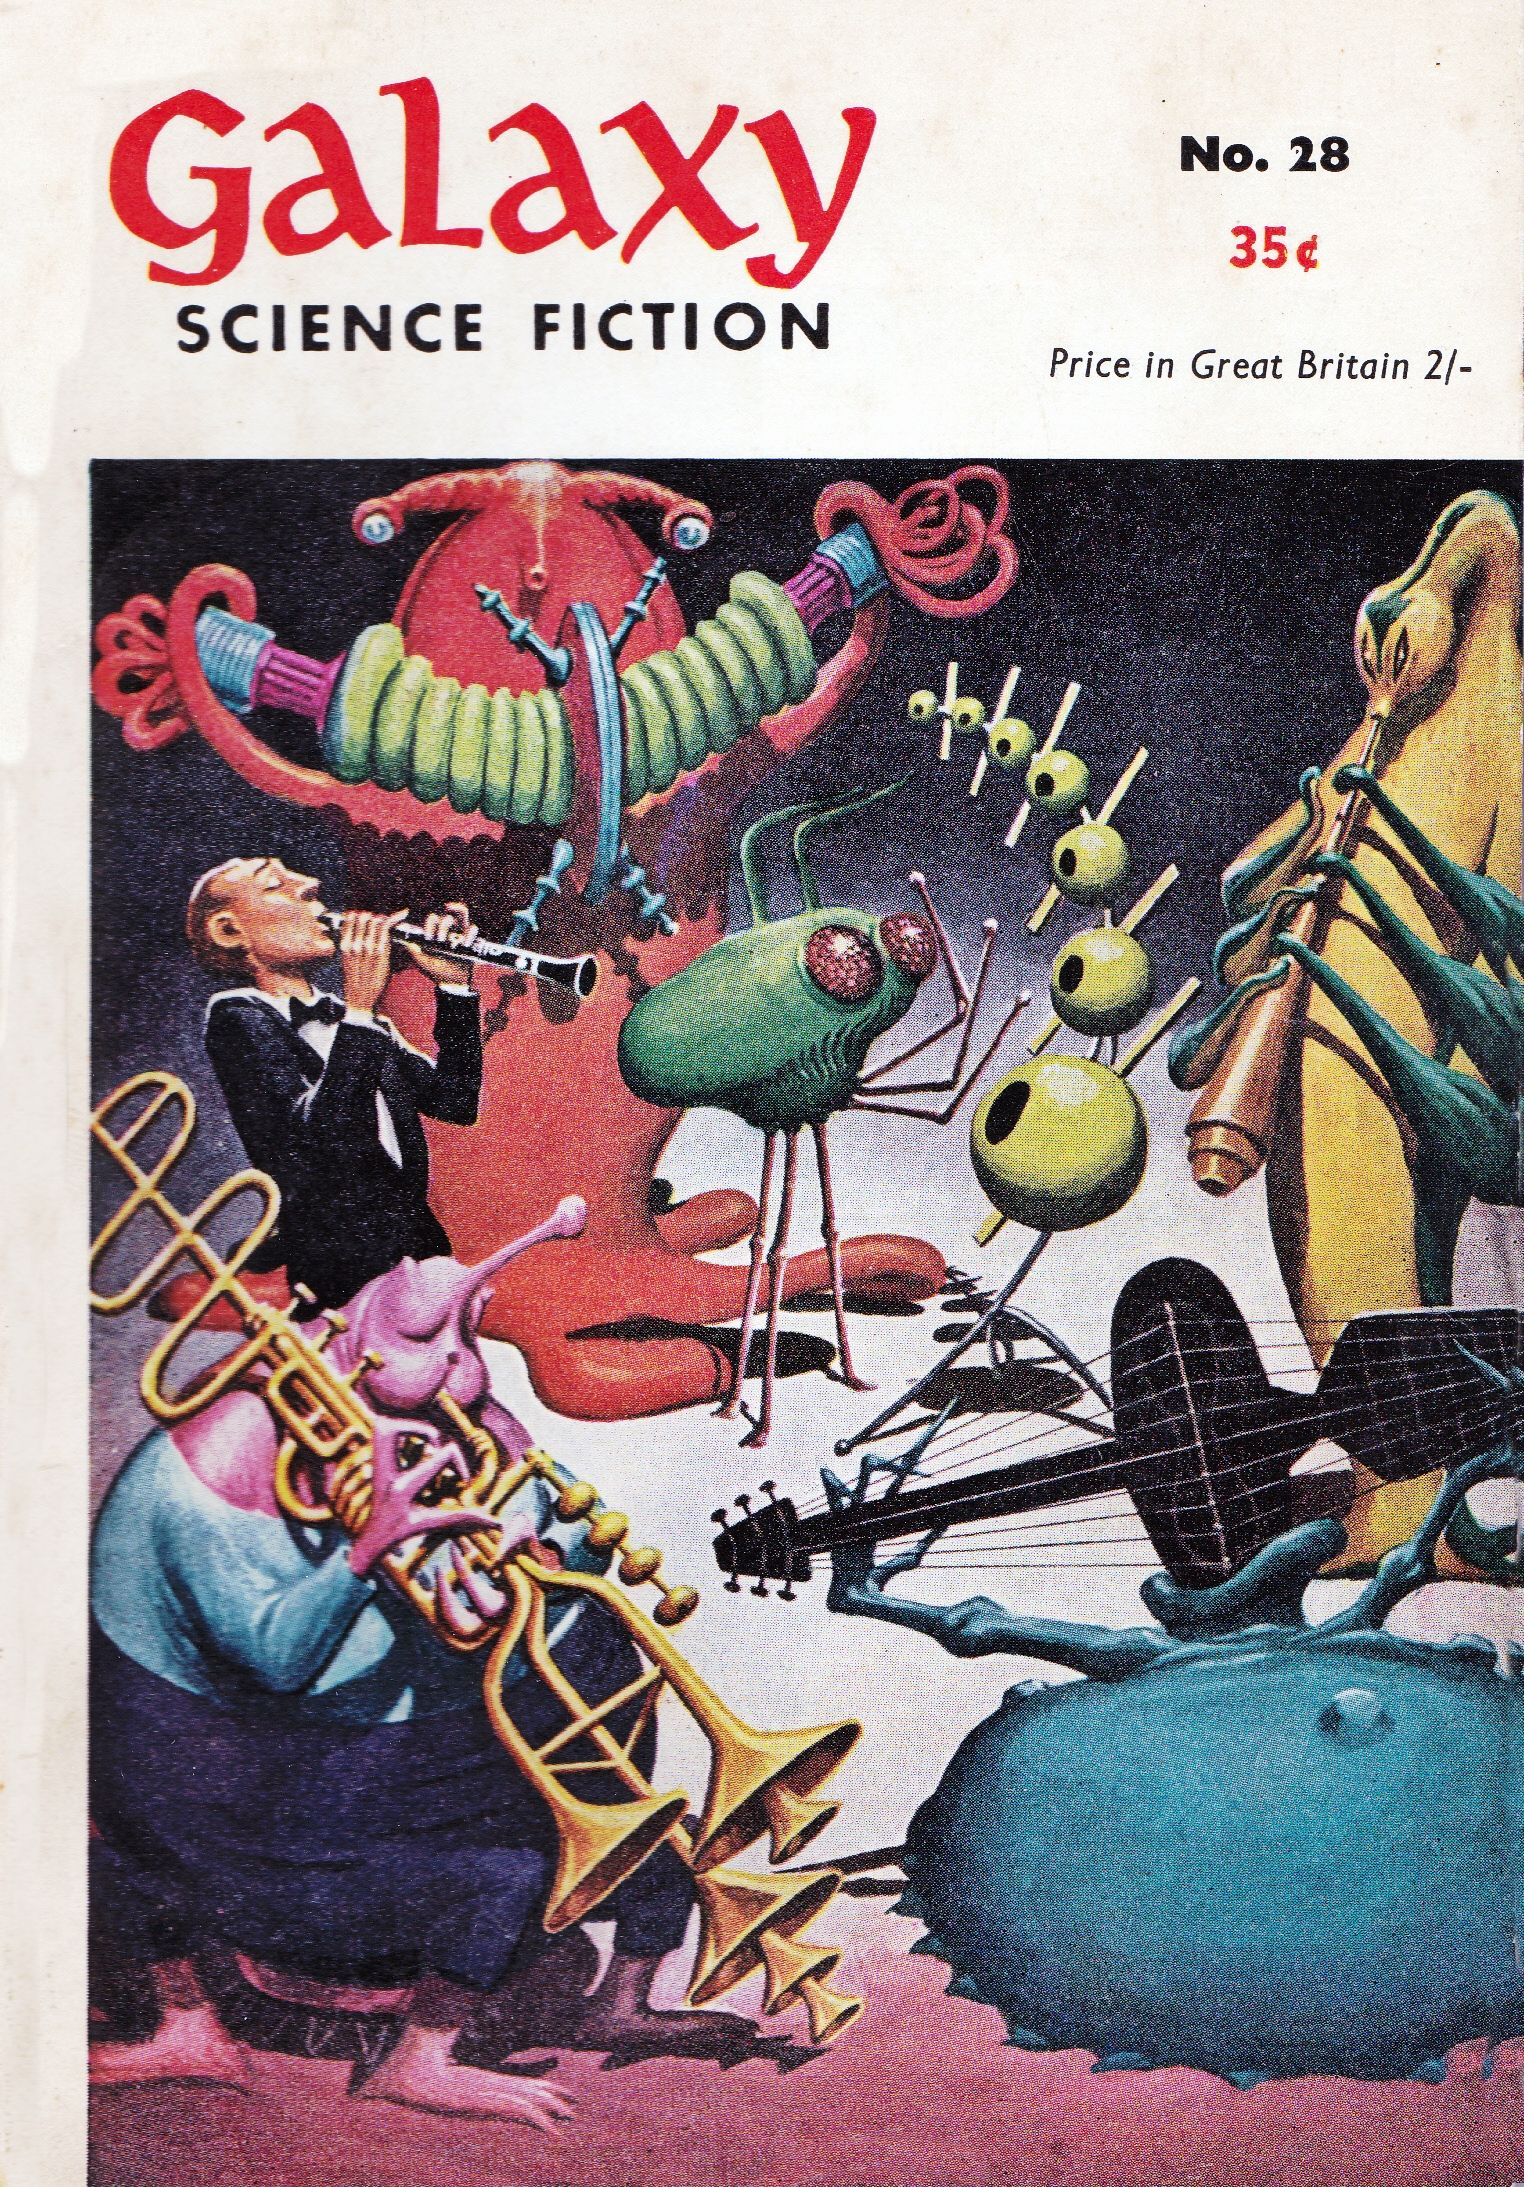 Galaxy Science Fiction Vintage Fantasy Cover Art Poster